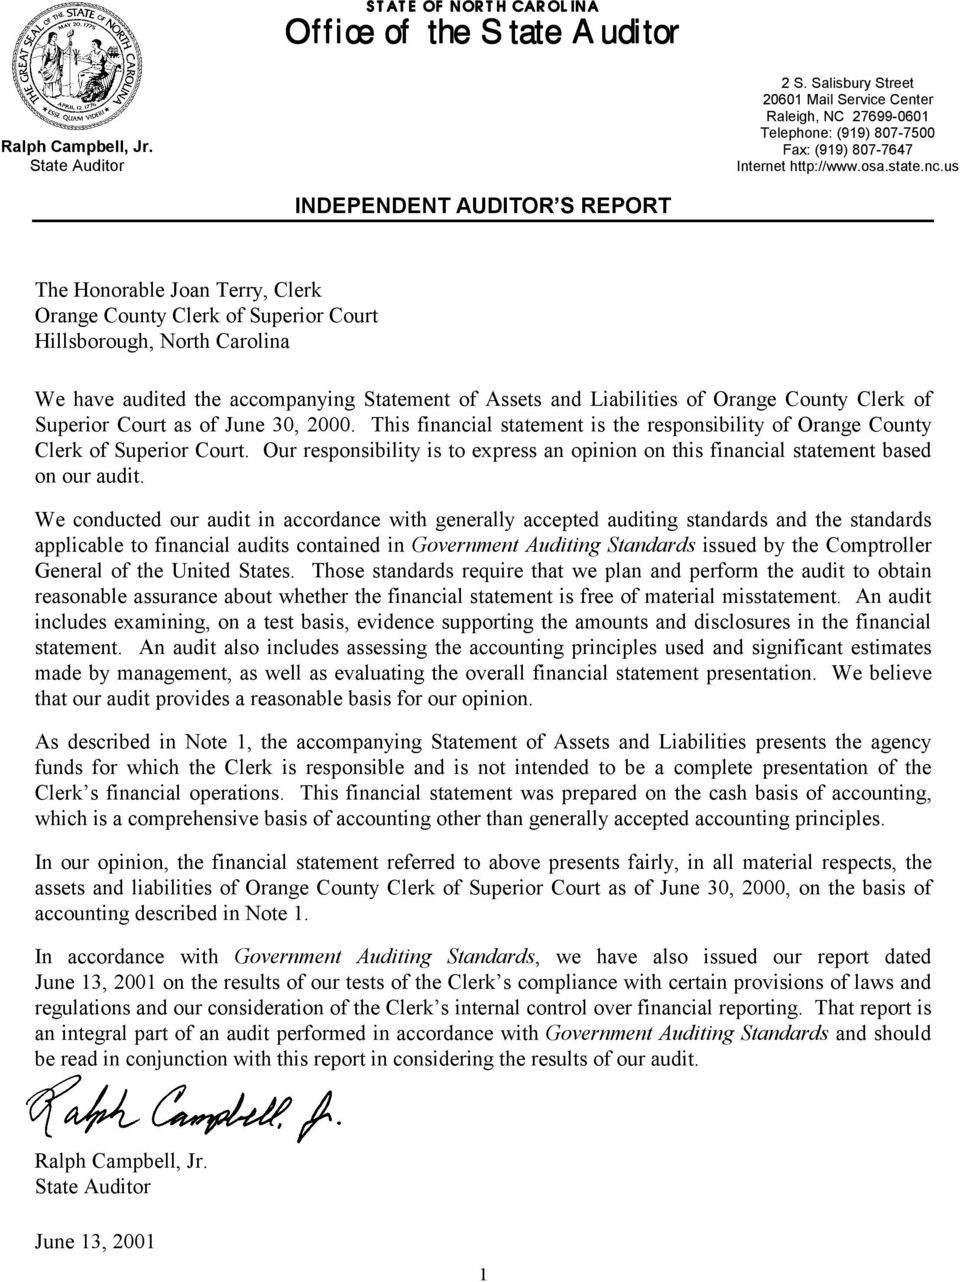 us INDEPENDENT AUDITOR S REPORT The Honorable Joan Terry, Clerk Orange County Clerk of Superior Court Hillsborough, North Carolina We have audited the accompanying Statement of Assets and Liabilities